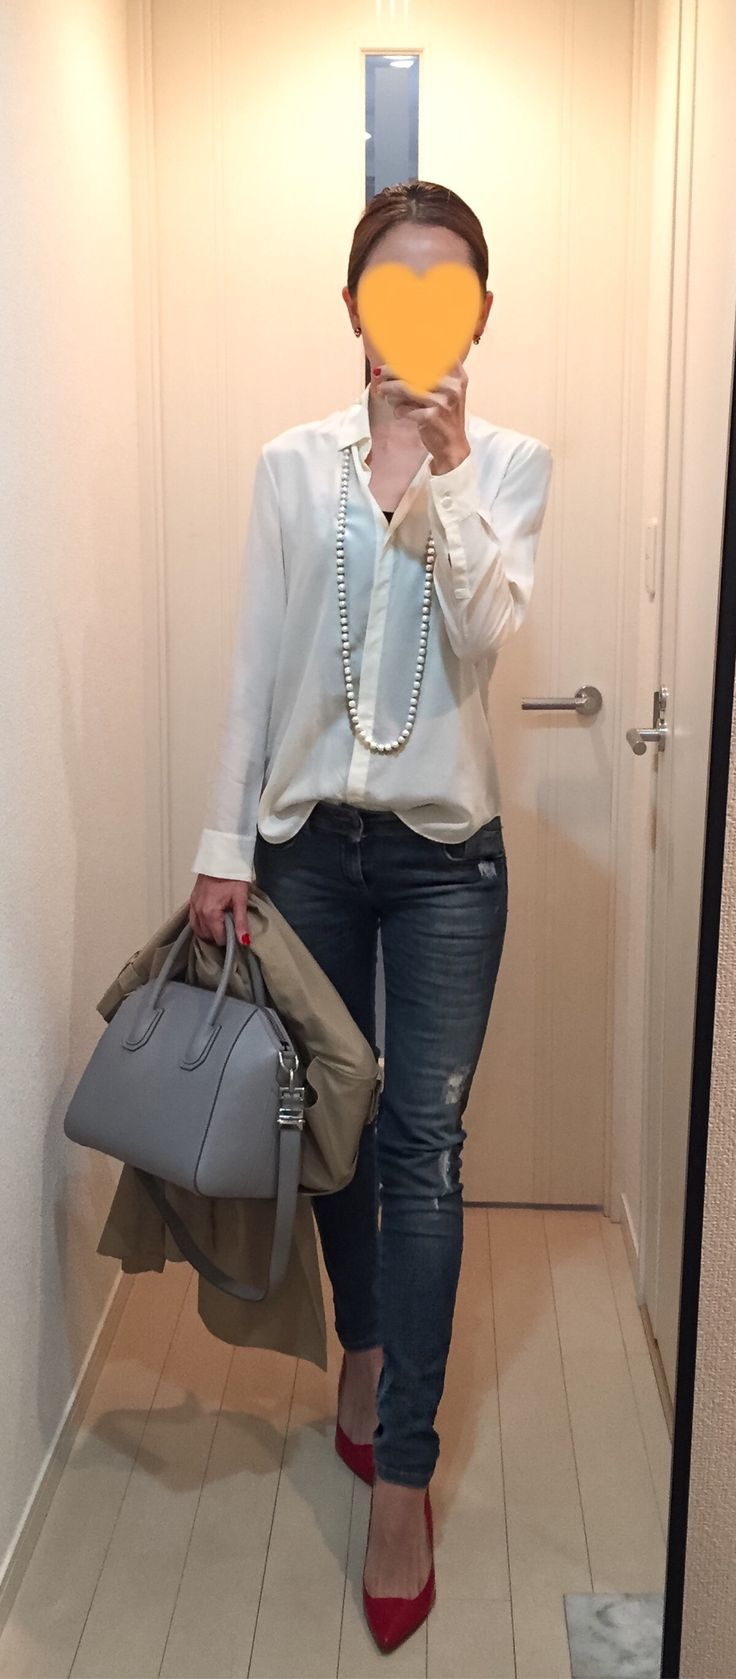 Silk shirt: Ballsey, Skinny: Sisley, Bag: GIVENCHY, Red pumps: Kanematsu